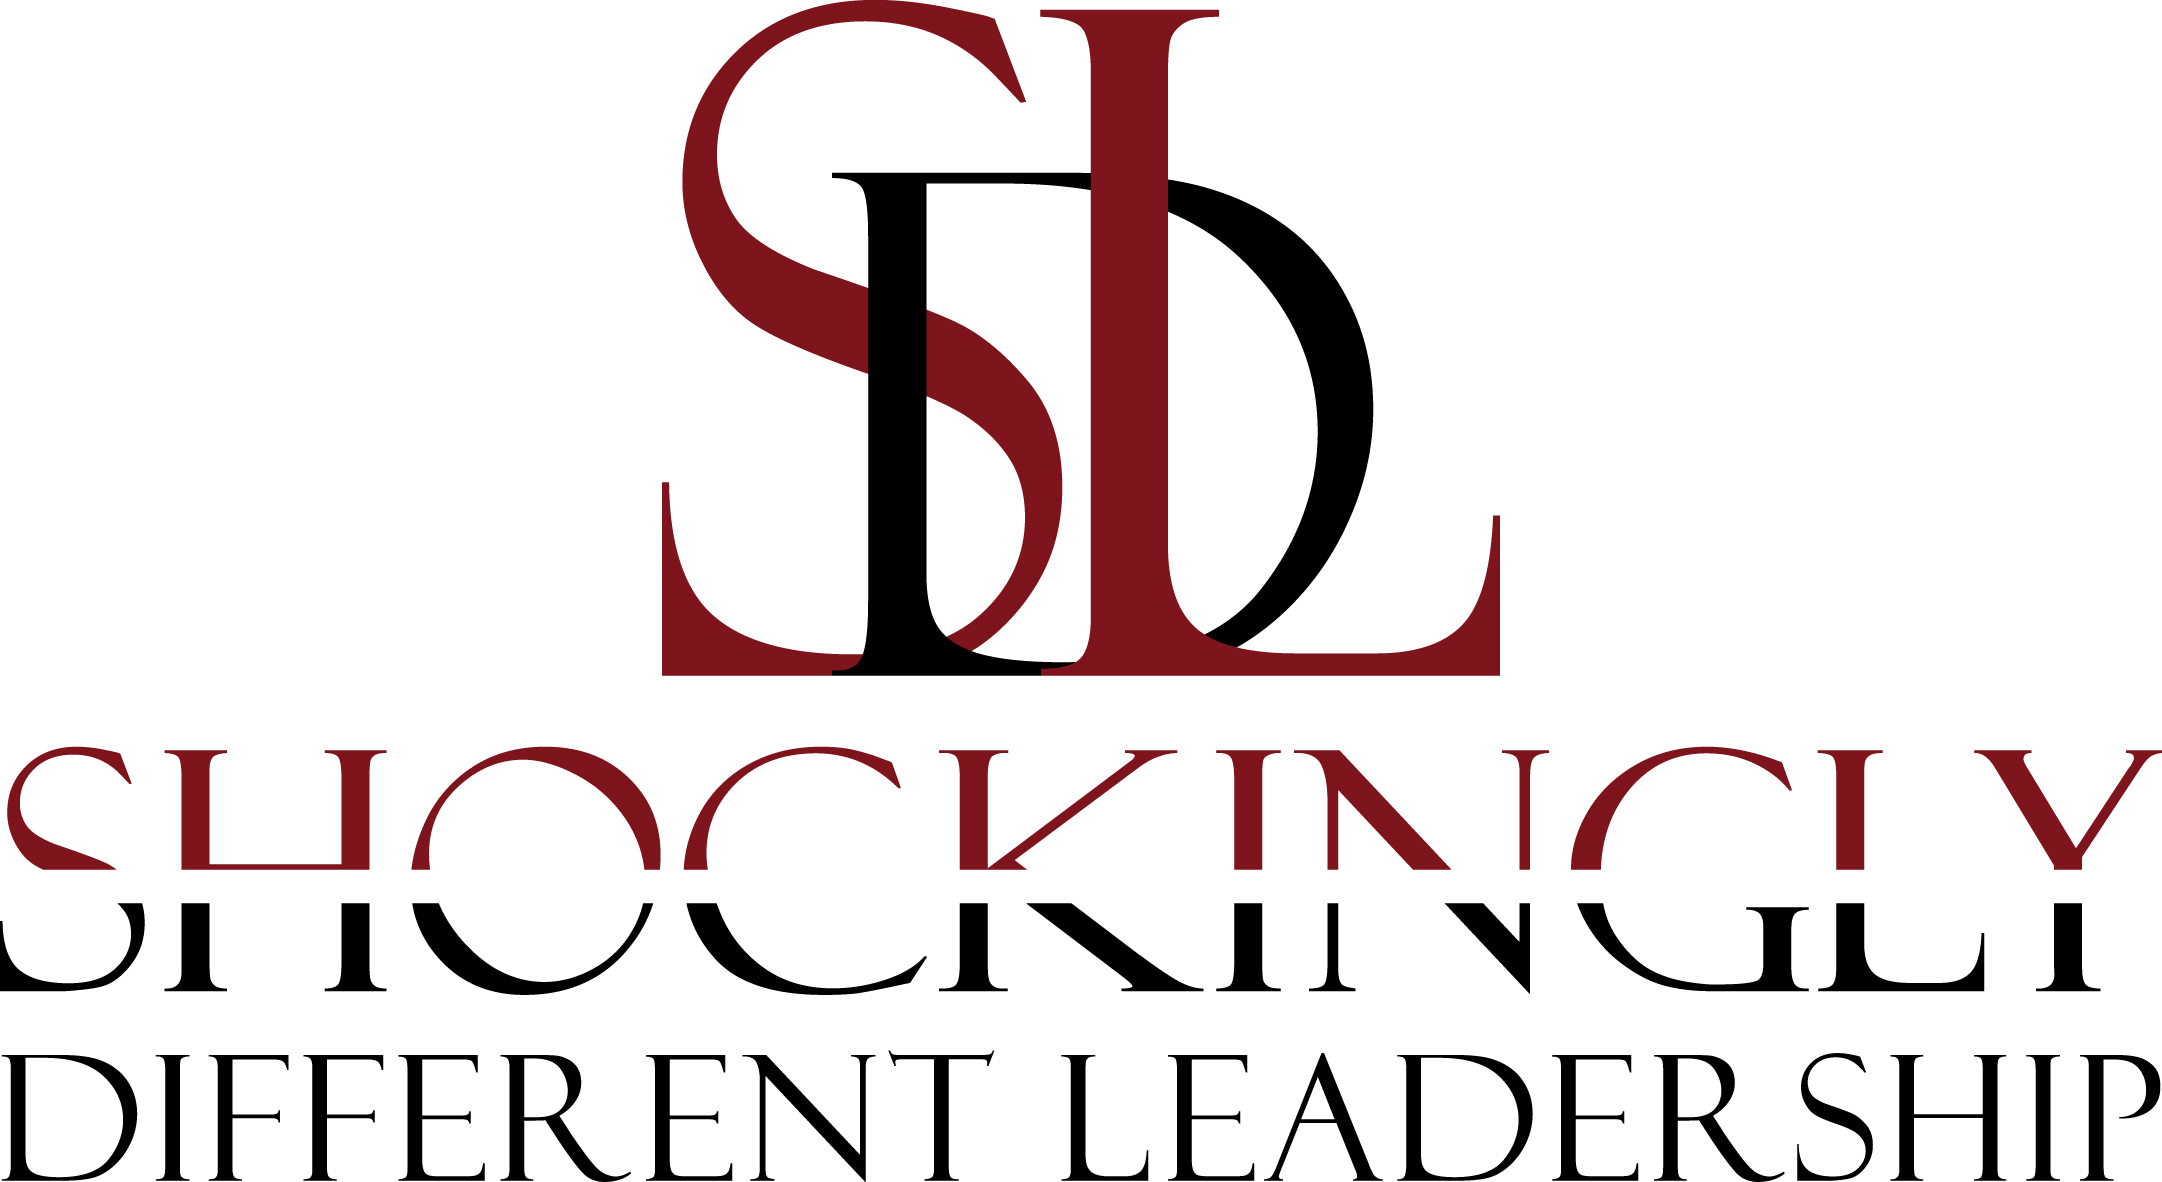 On-Demand Experts for Talent Development, HR, and OD Projects | Shockingly Different Leadership